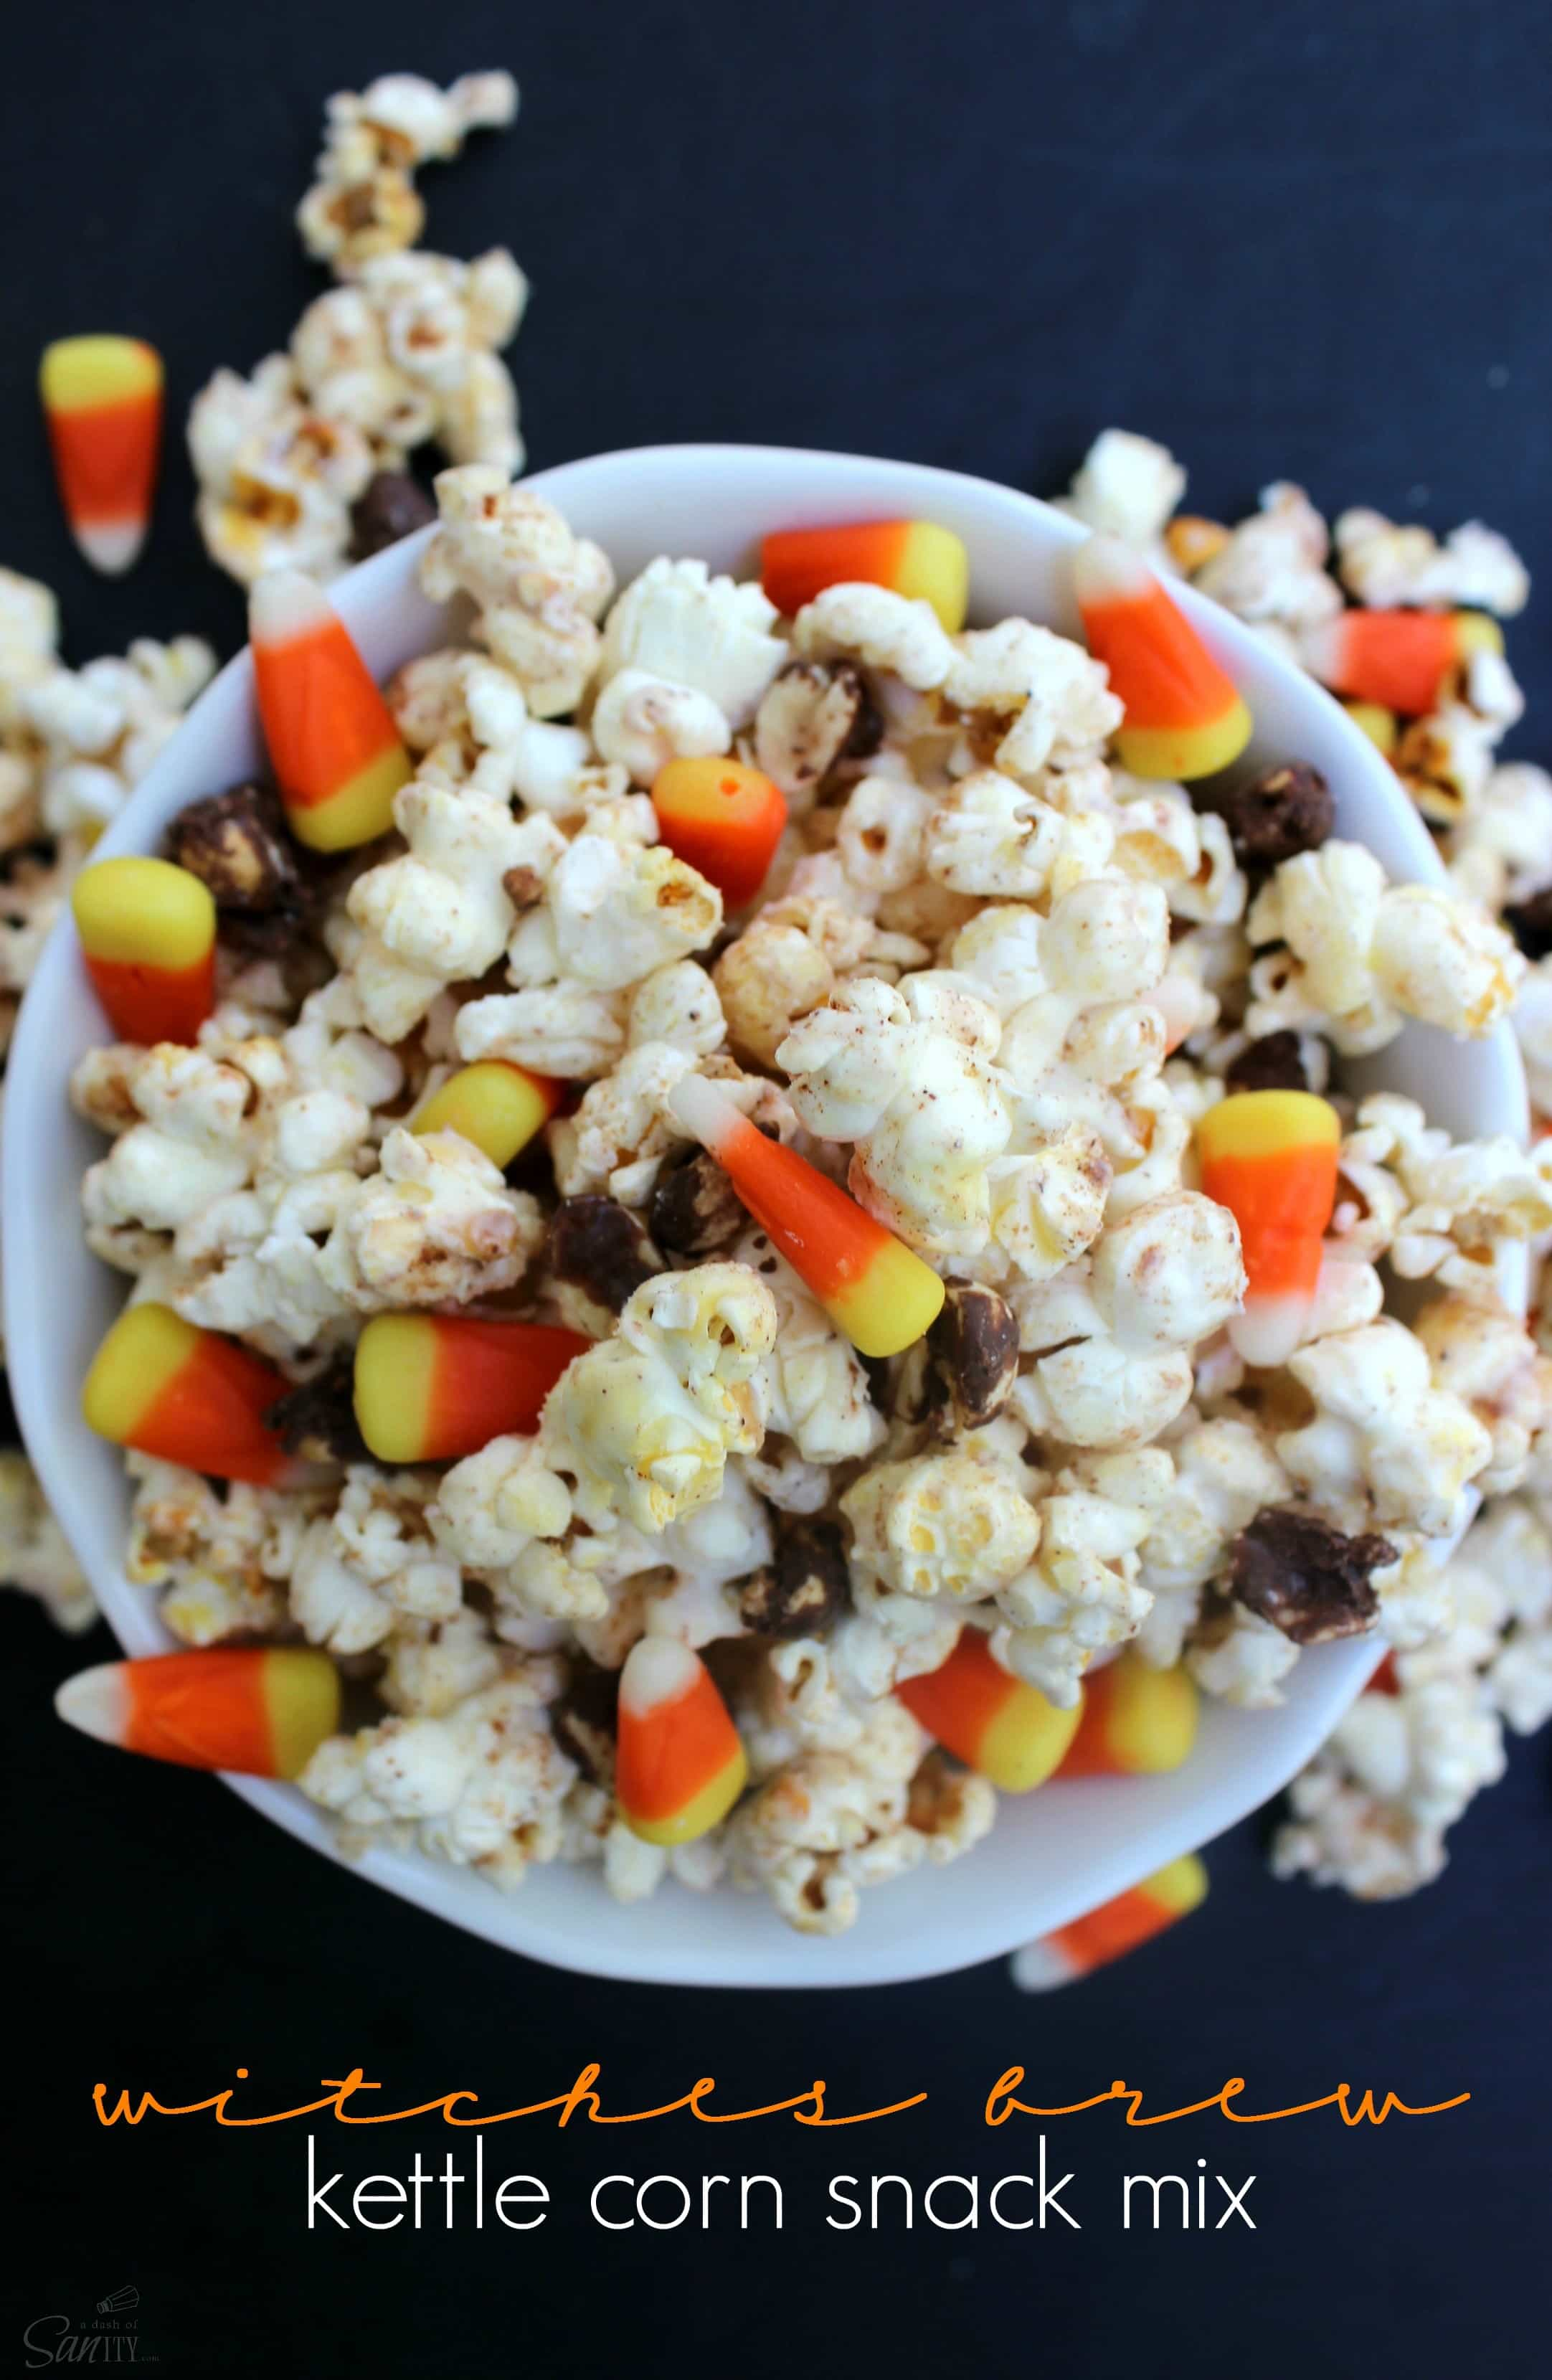 witches-brew-kettle-corn-snack-mix